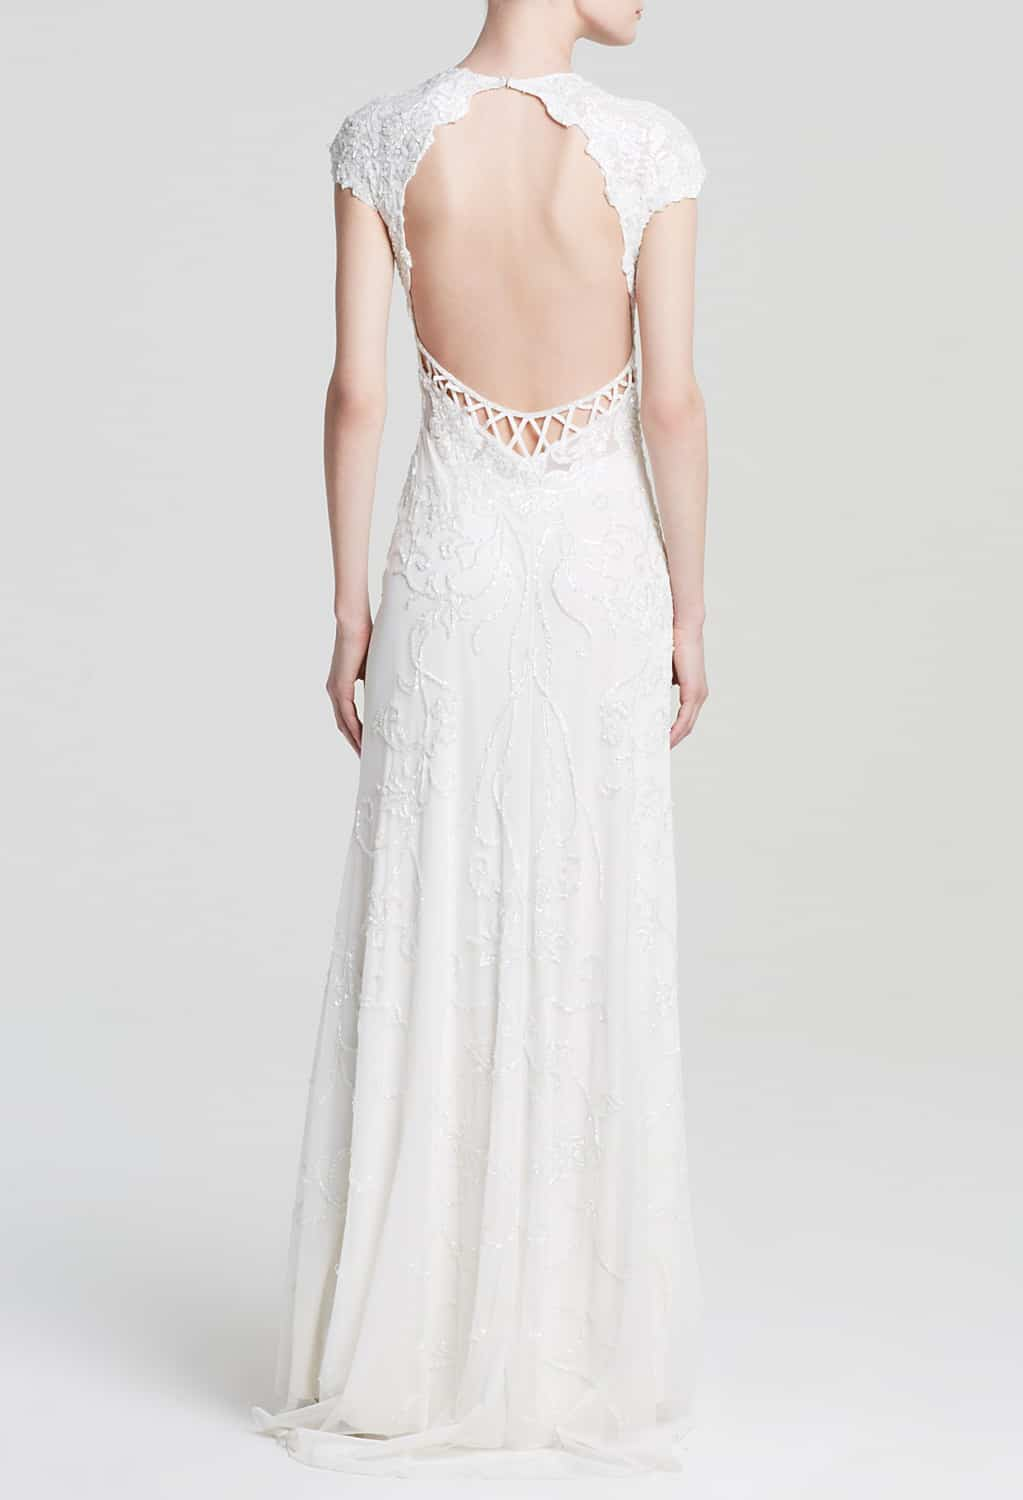 Top wedding dresses under $1000 - backless gown by Mac Duggal